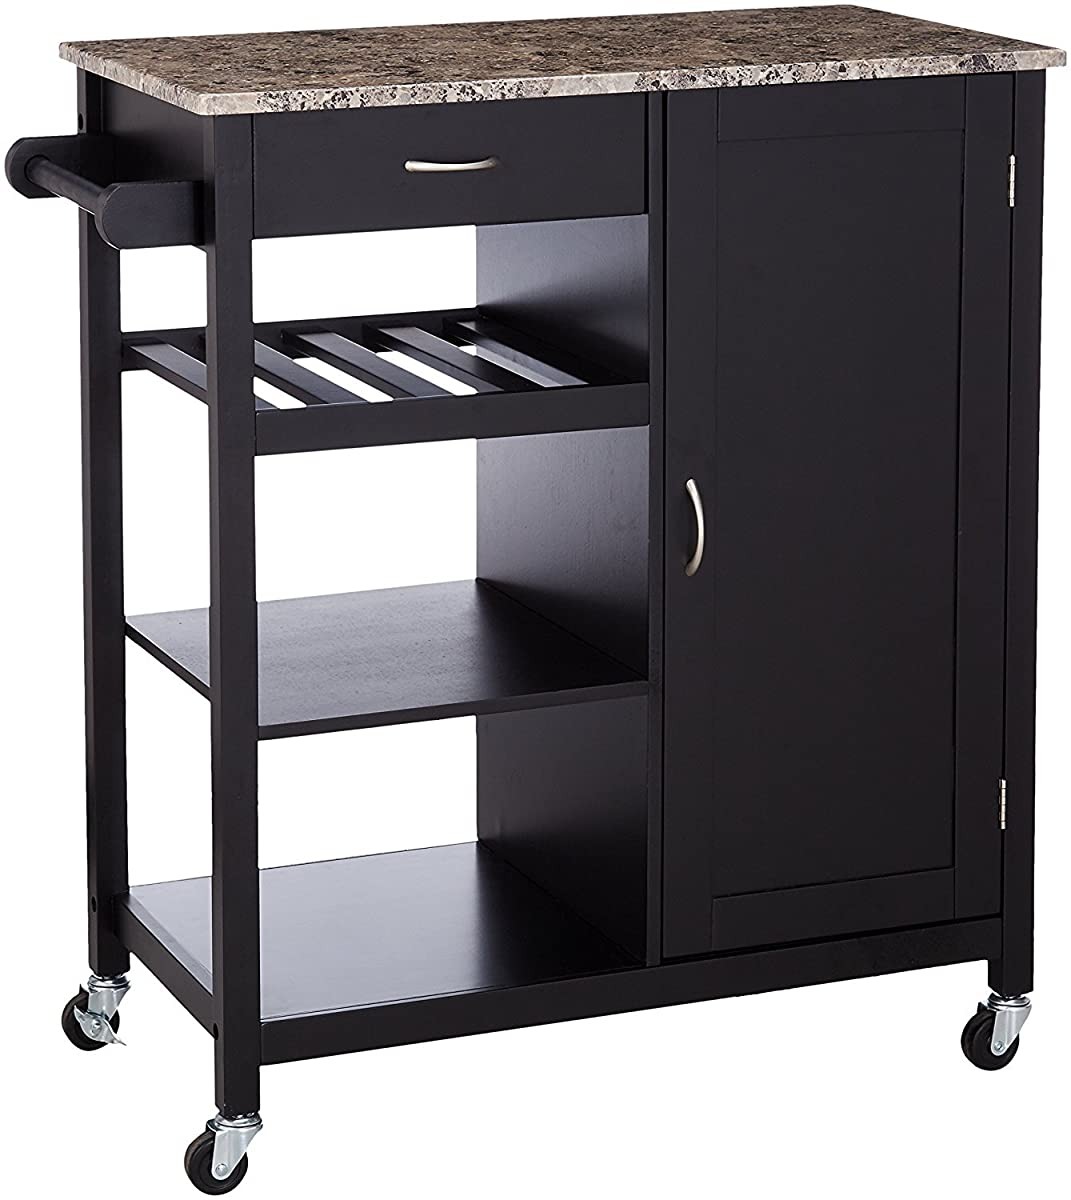 Kings Brand Black Finish Wood & Marble Finish Top Kitchen Storage Cabinet Cart